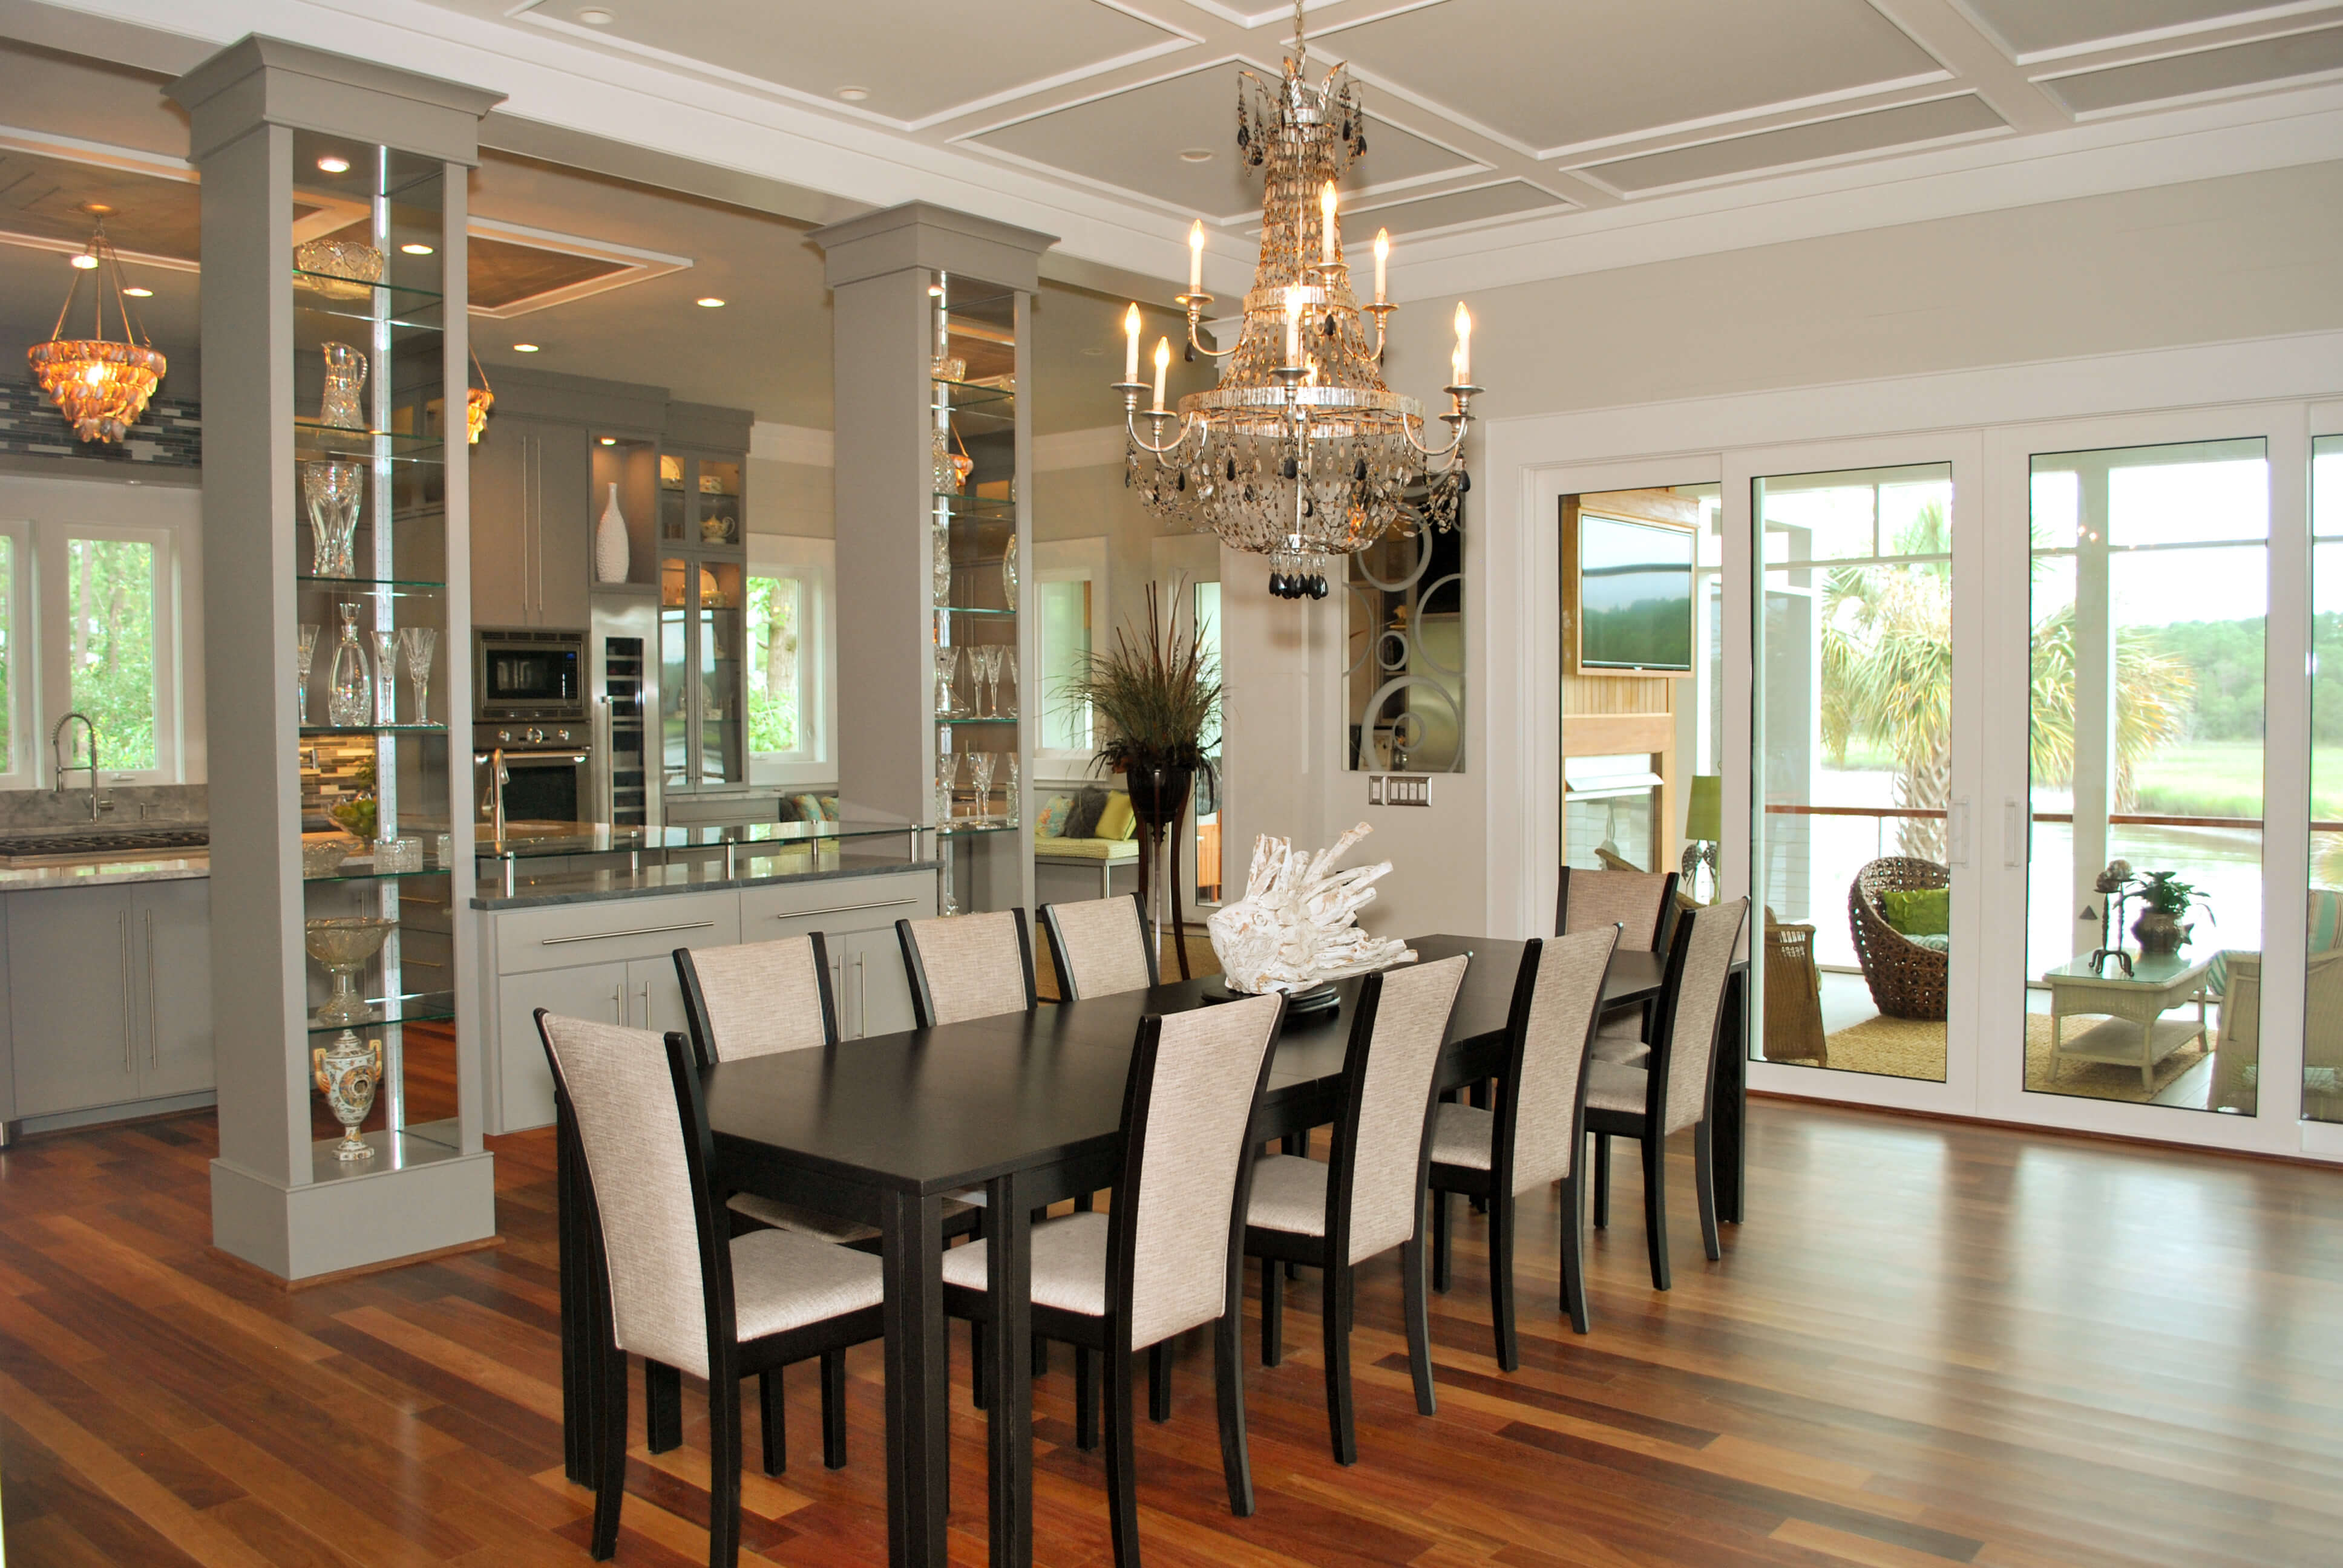 Extra long dining room table in black with black and white chairs, elaborate chandelier overhead, and twin glass-shelved pillars dividing kitchen space.